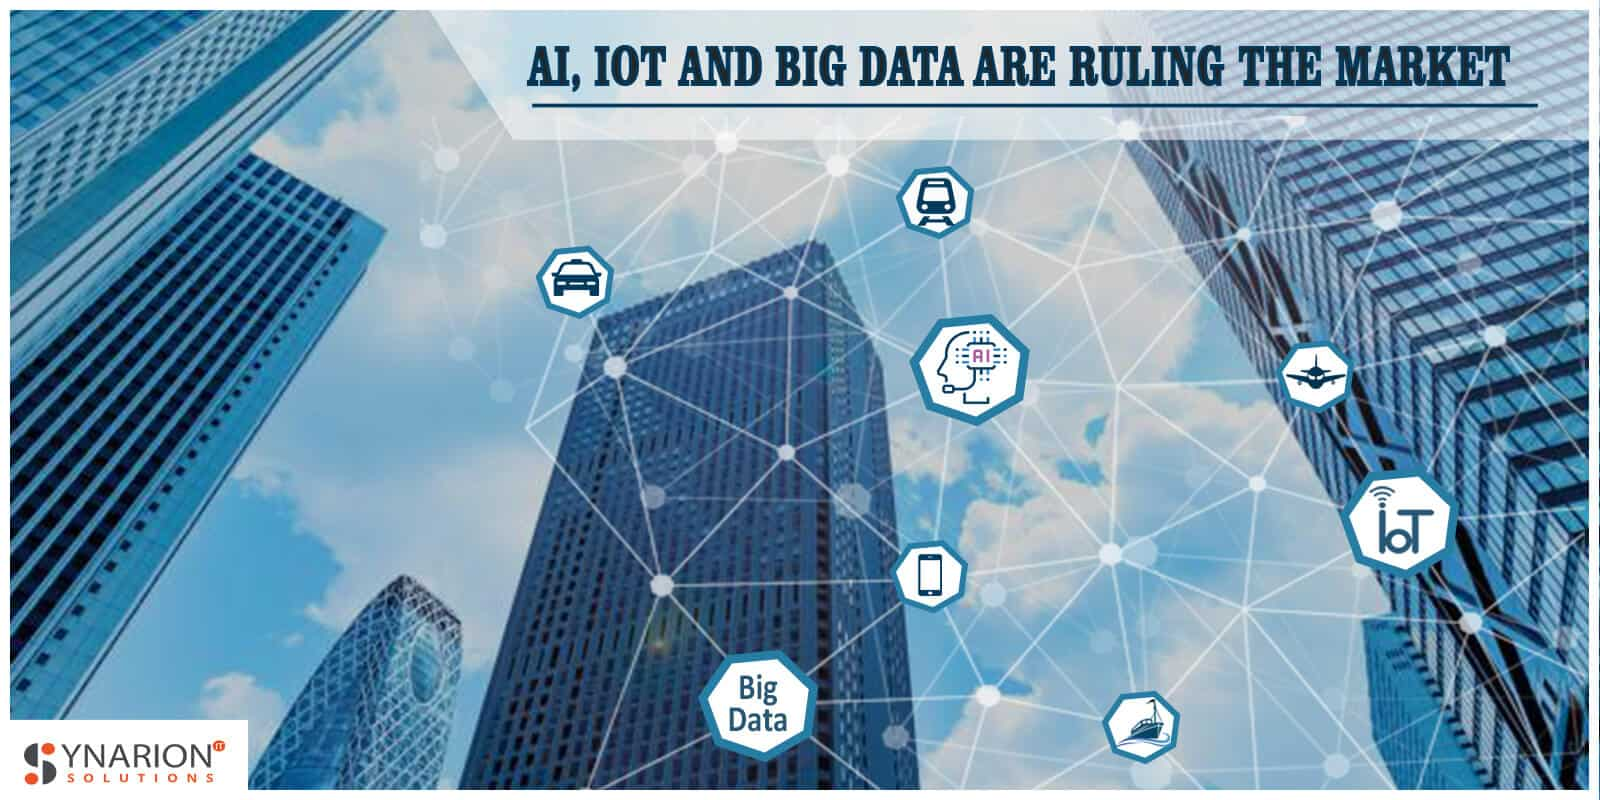 Impact Of AI, IoT And Big Data On Transportation Industry